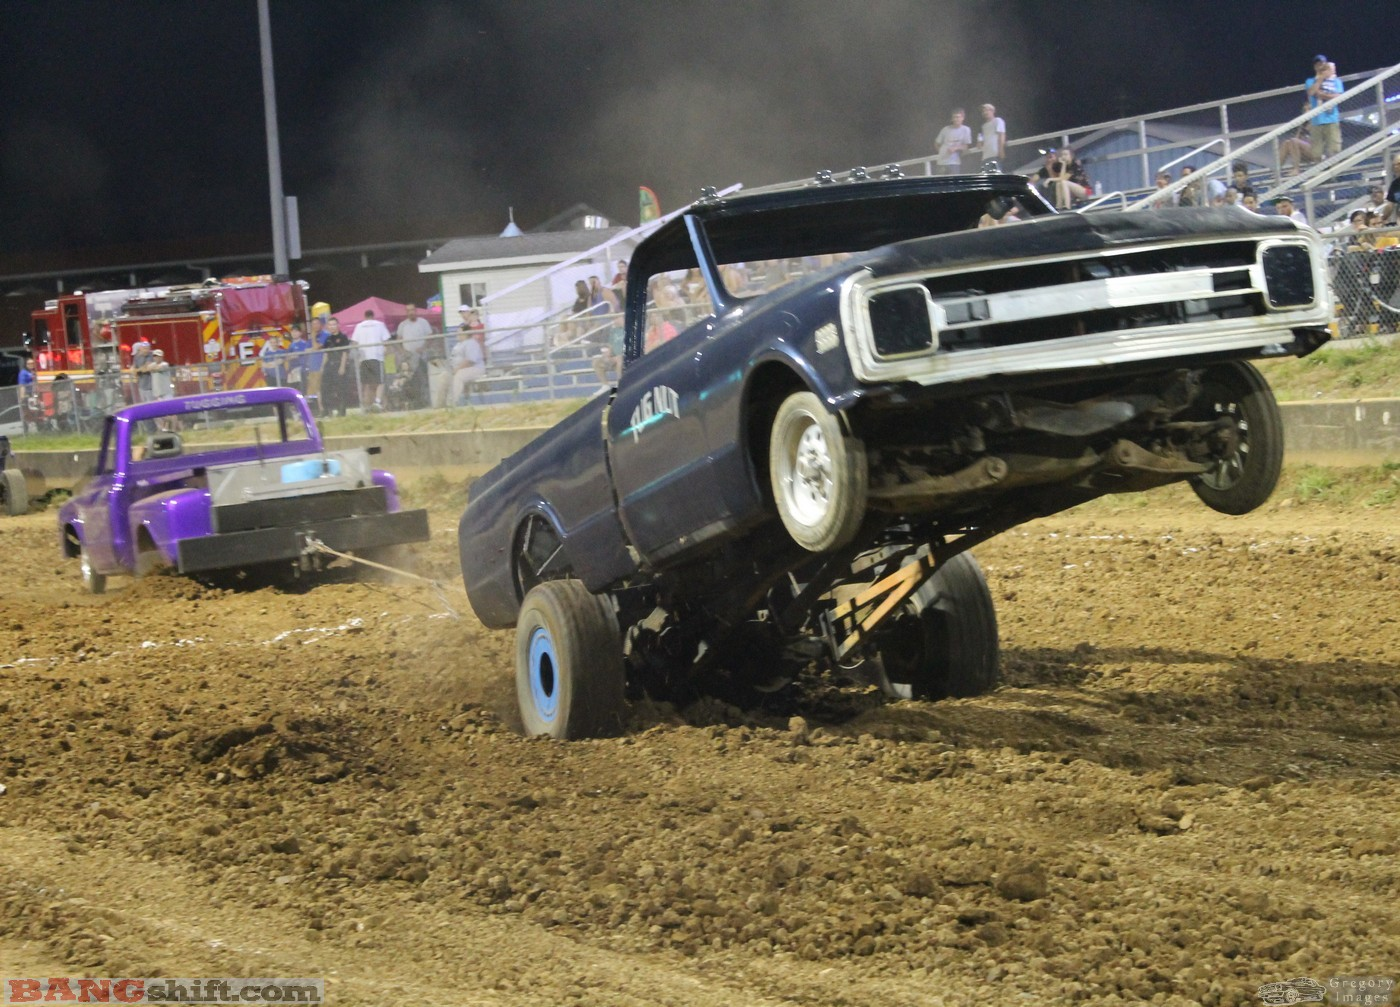 Tuggers! Check Out These Photos Featuring Tug Of War Trucks From The Scott County Fair In Kentucky